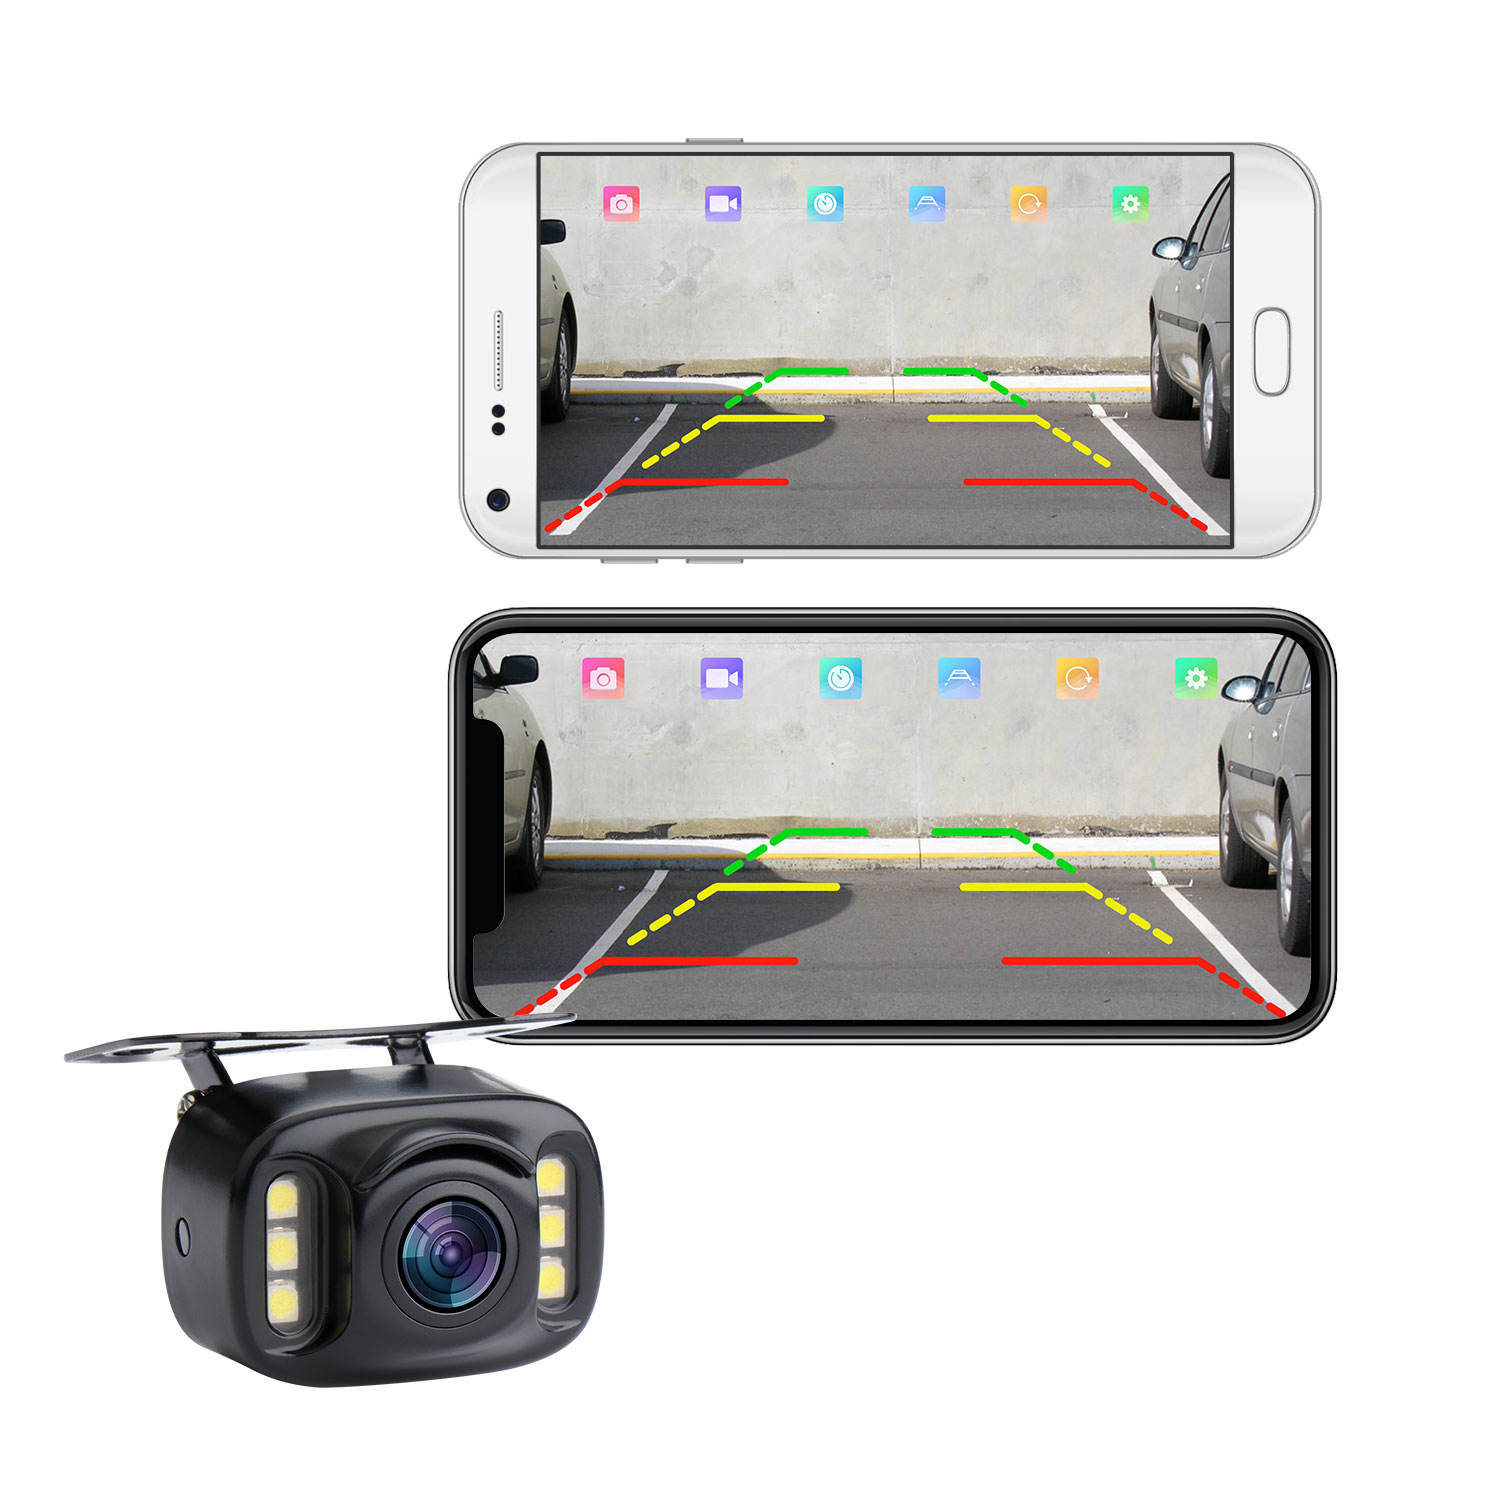 Wifi App Camera Reverse Parking 6 Led Backup Rear View Camera Truck Camera Systeem Voor Auto Rv Caravan